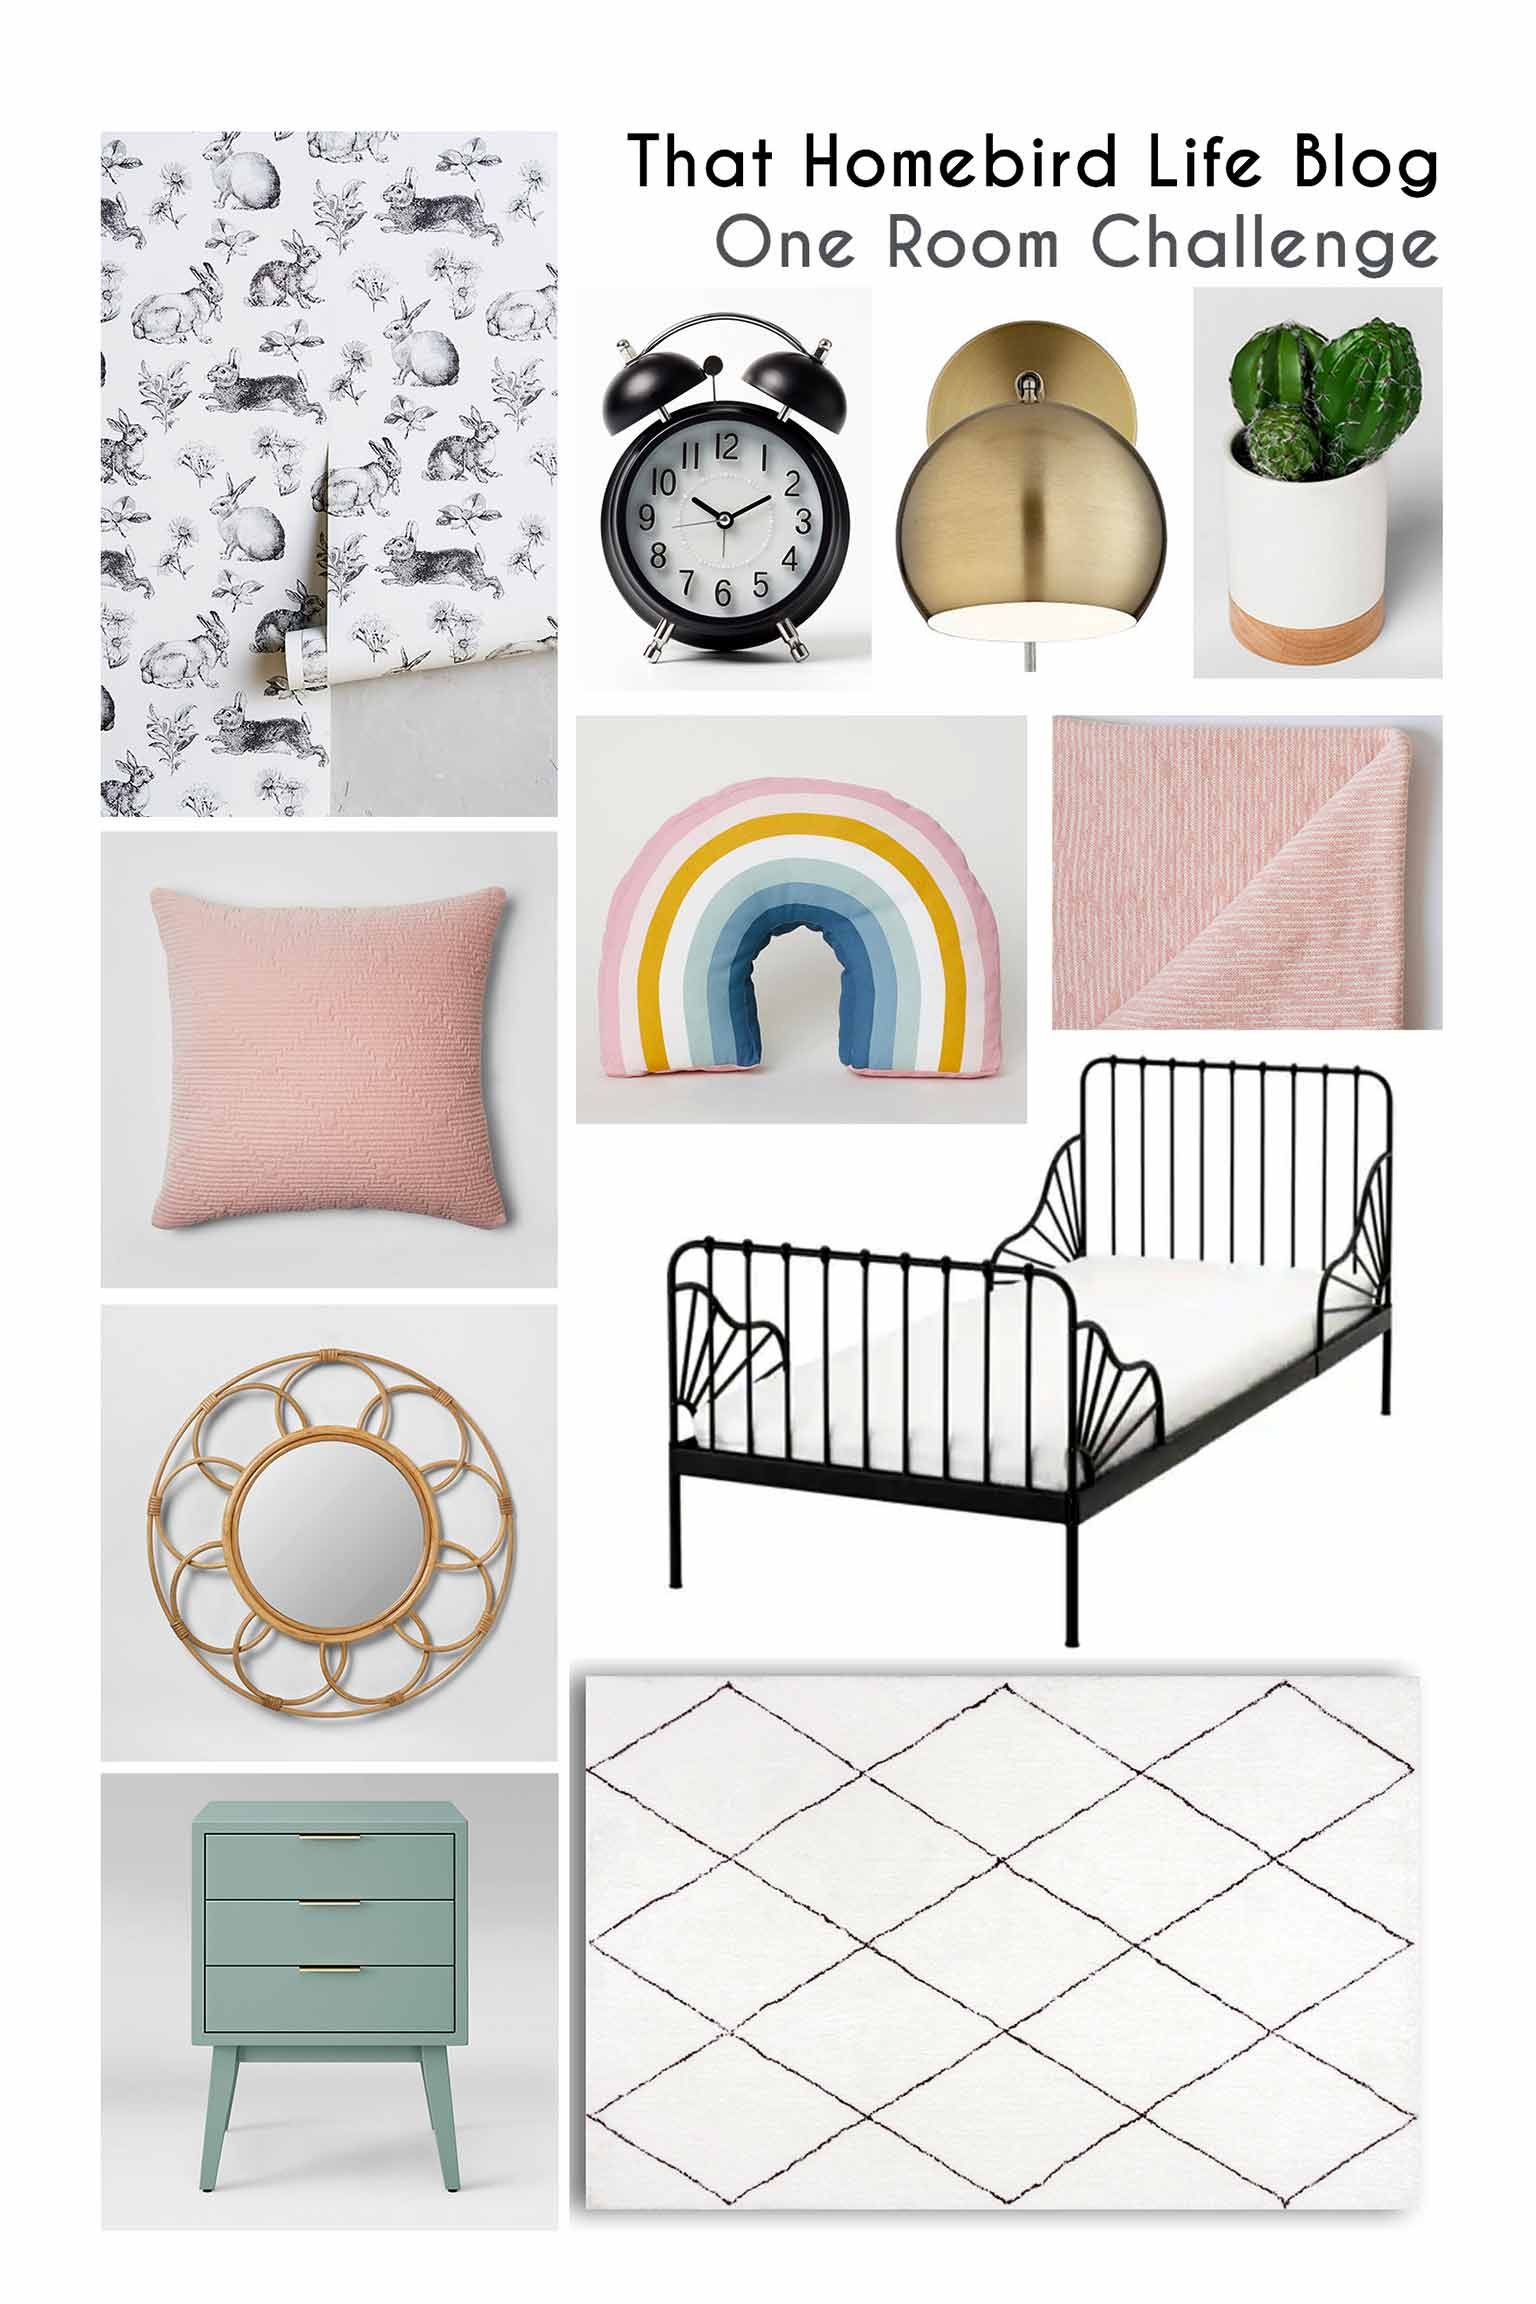 Mood board for Girls' Bedroom - Guest Participant of the One Room Challenge - That Homebird Life Blog